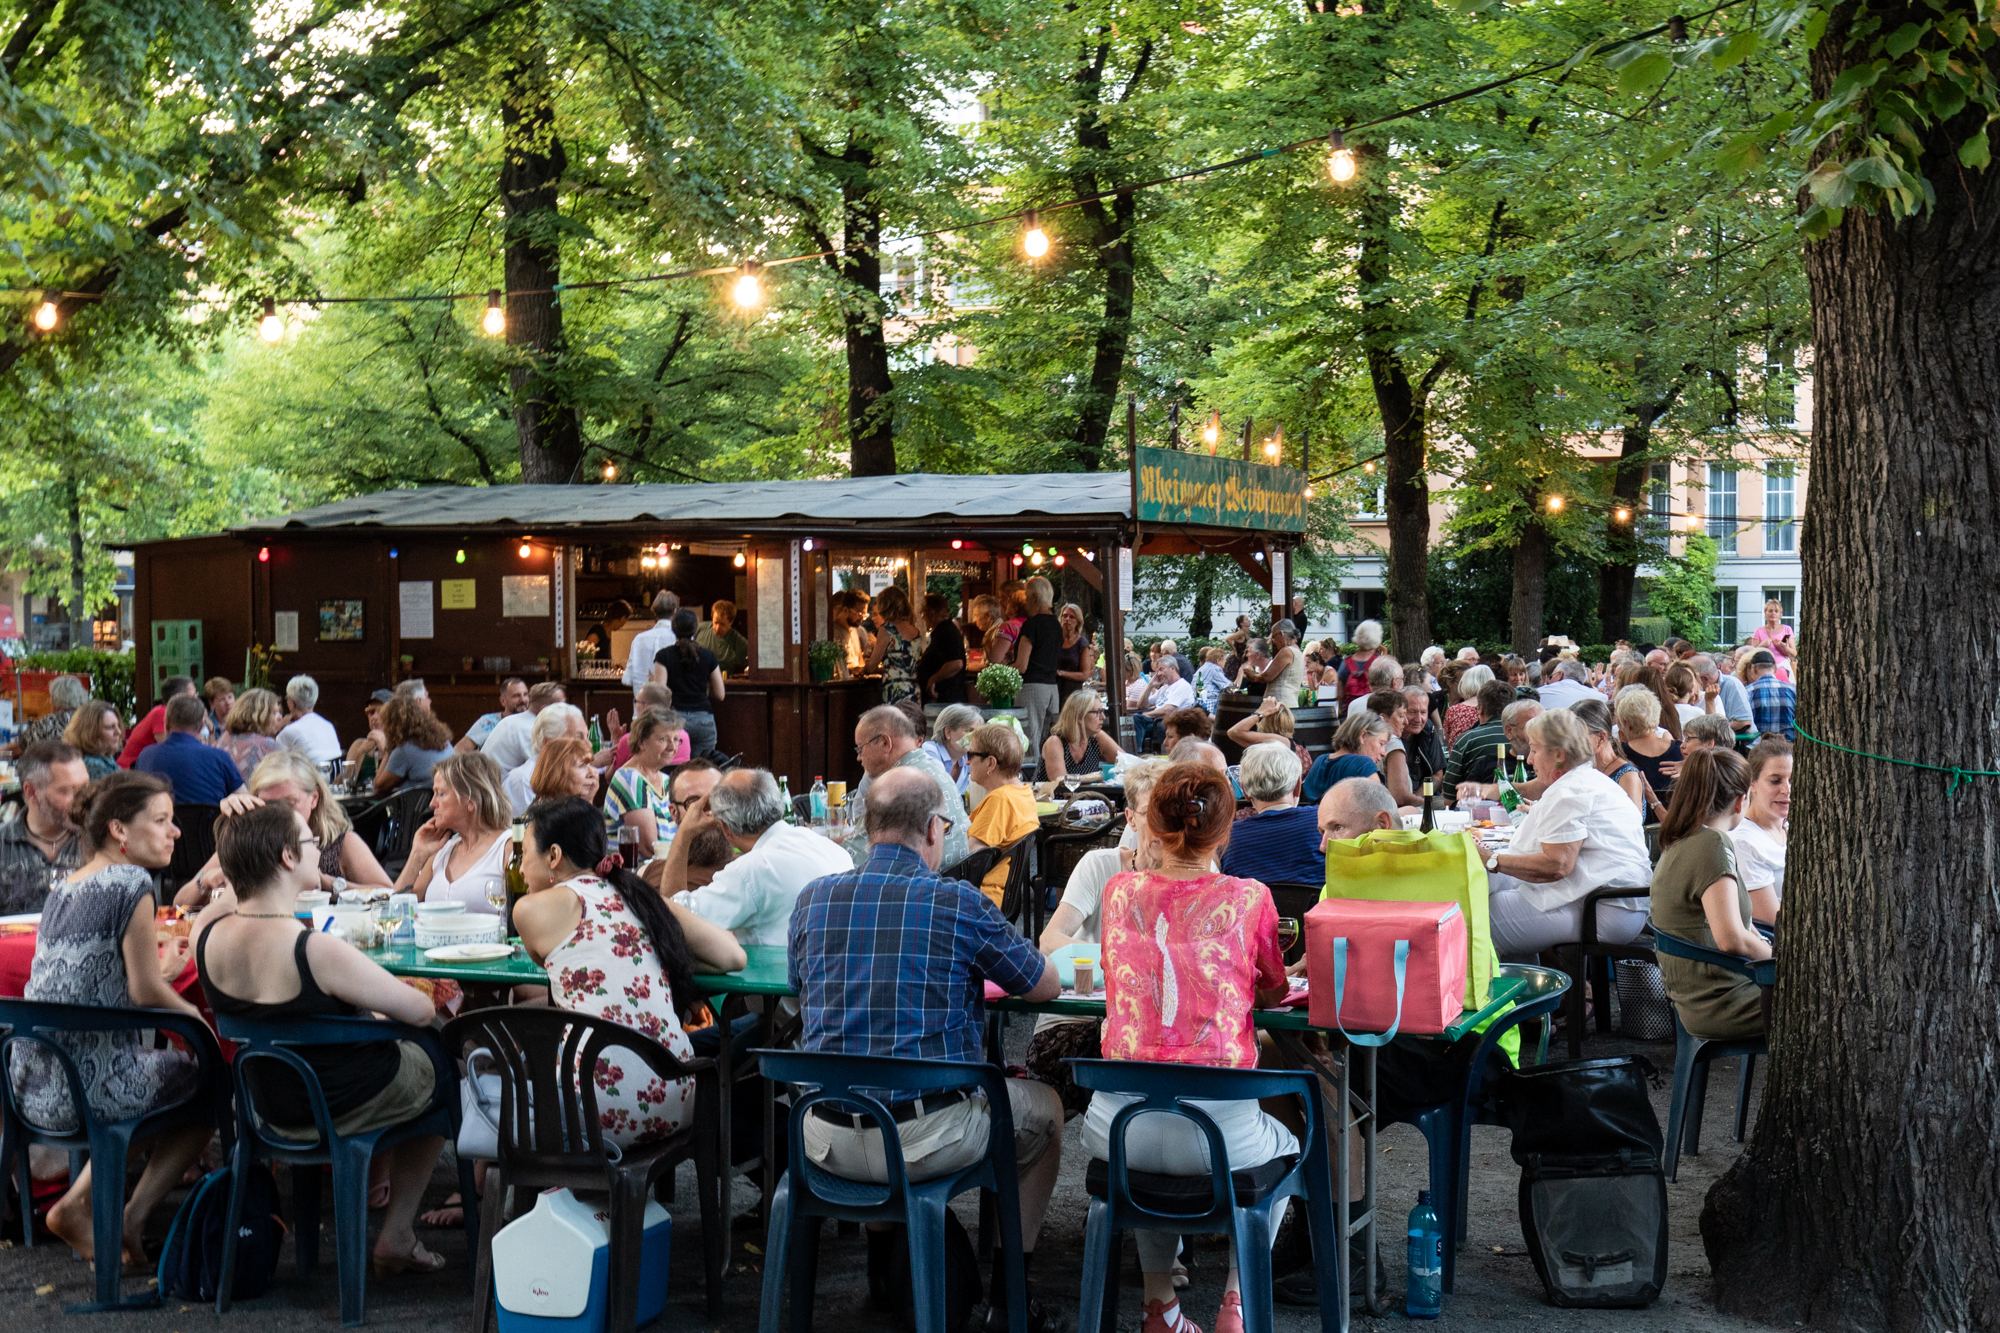 Guests enjoying picnics and wine at Rheingauer Weinbrunnen - a wooden hut serving wines from Rheingau-Taunus district of Hesse on the Rüdesheimer Platz in Berlin Wilmersdorf